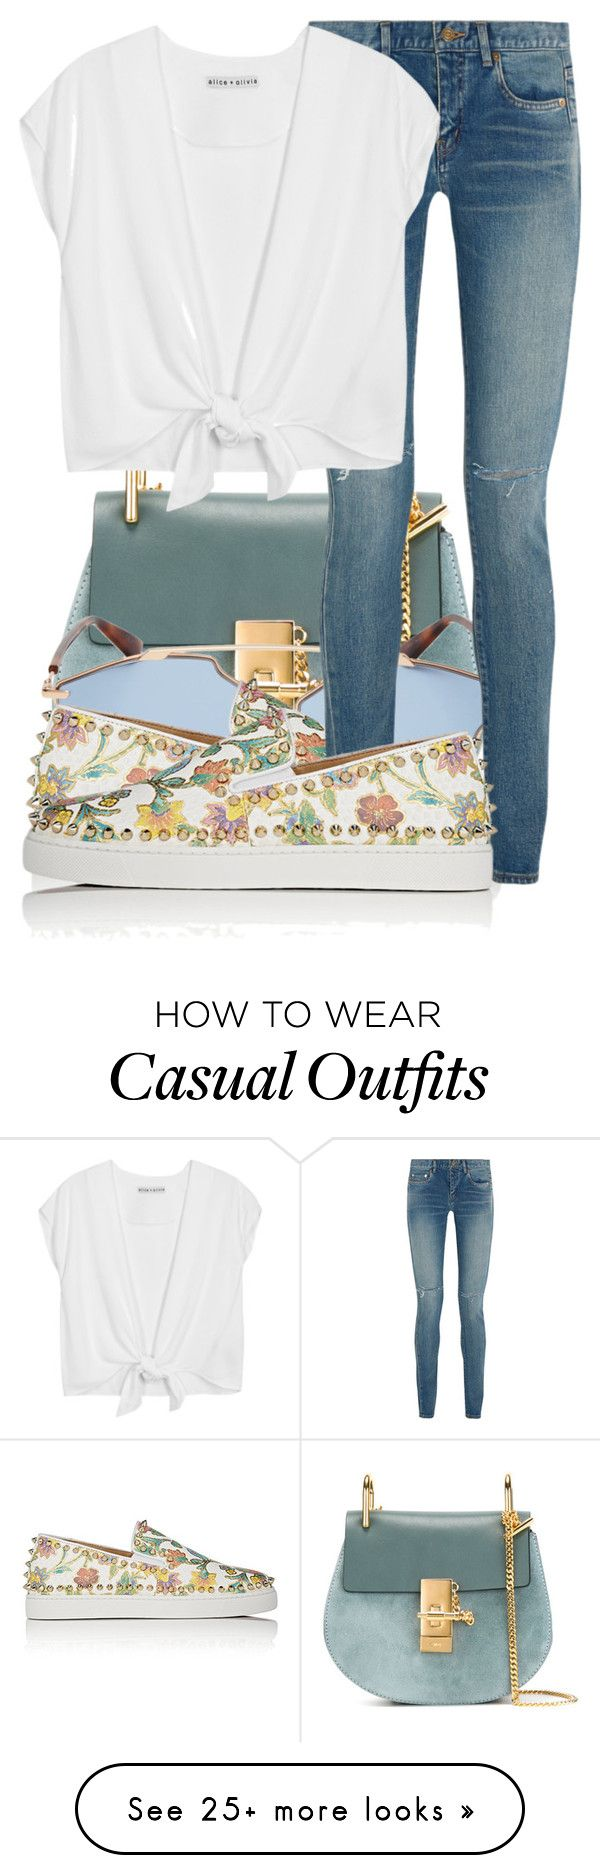 """""""Casual white tee"""" by jacisummer on Polyvore featuring Chloé, Christian Dior, Christian Louboutin, Yves Saint Laurent and Alice + Olivia"""